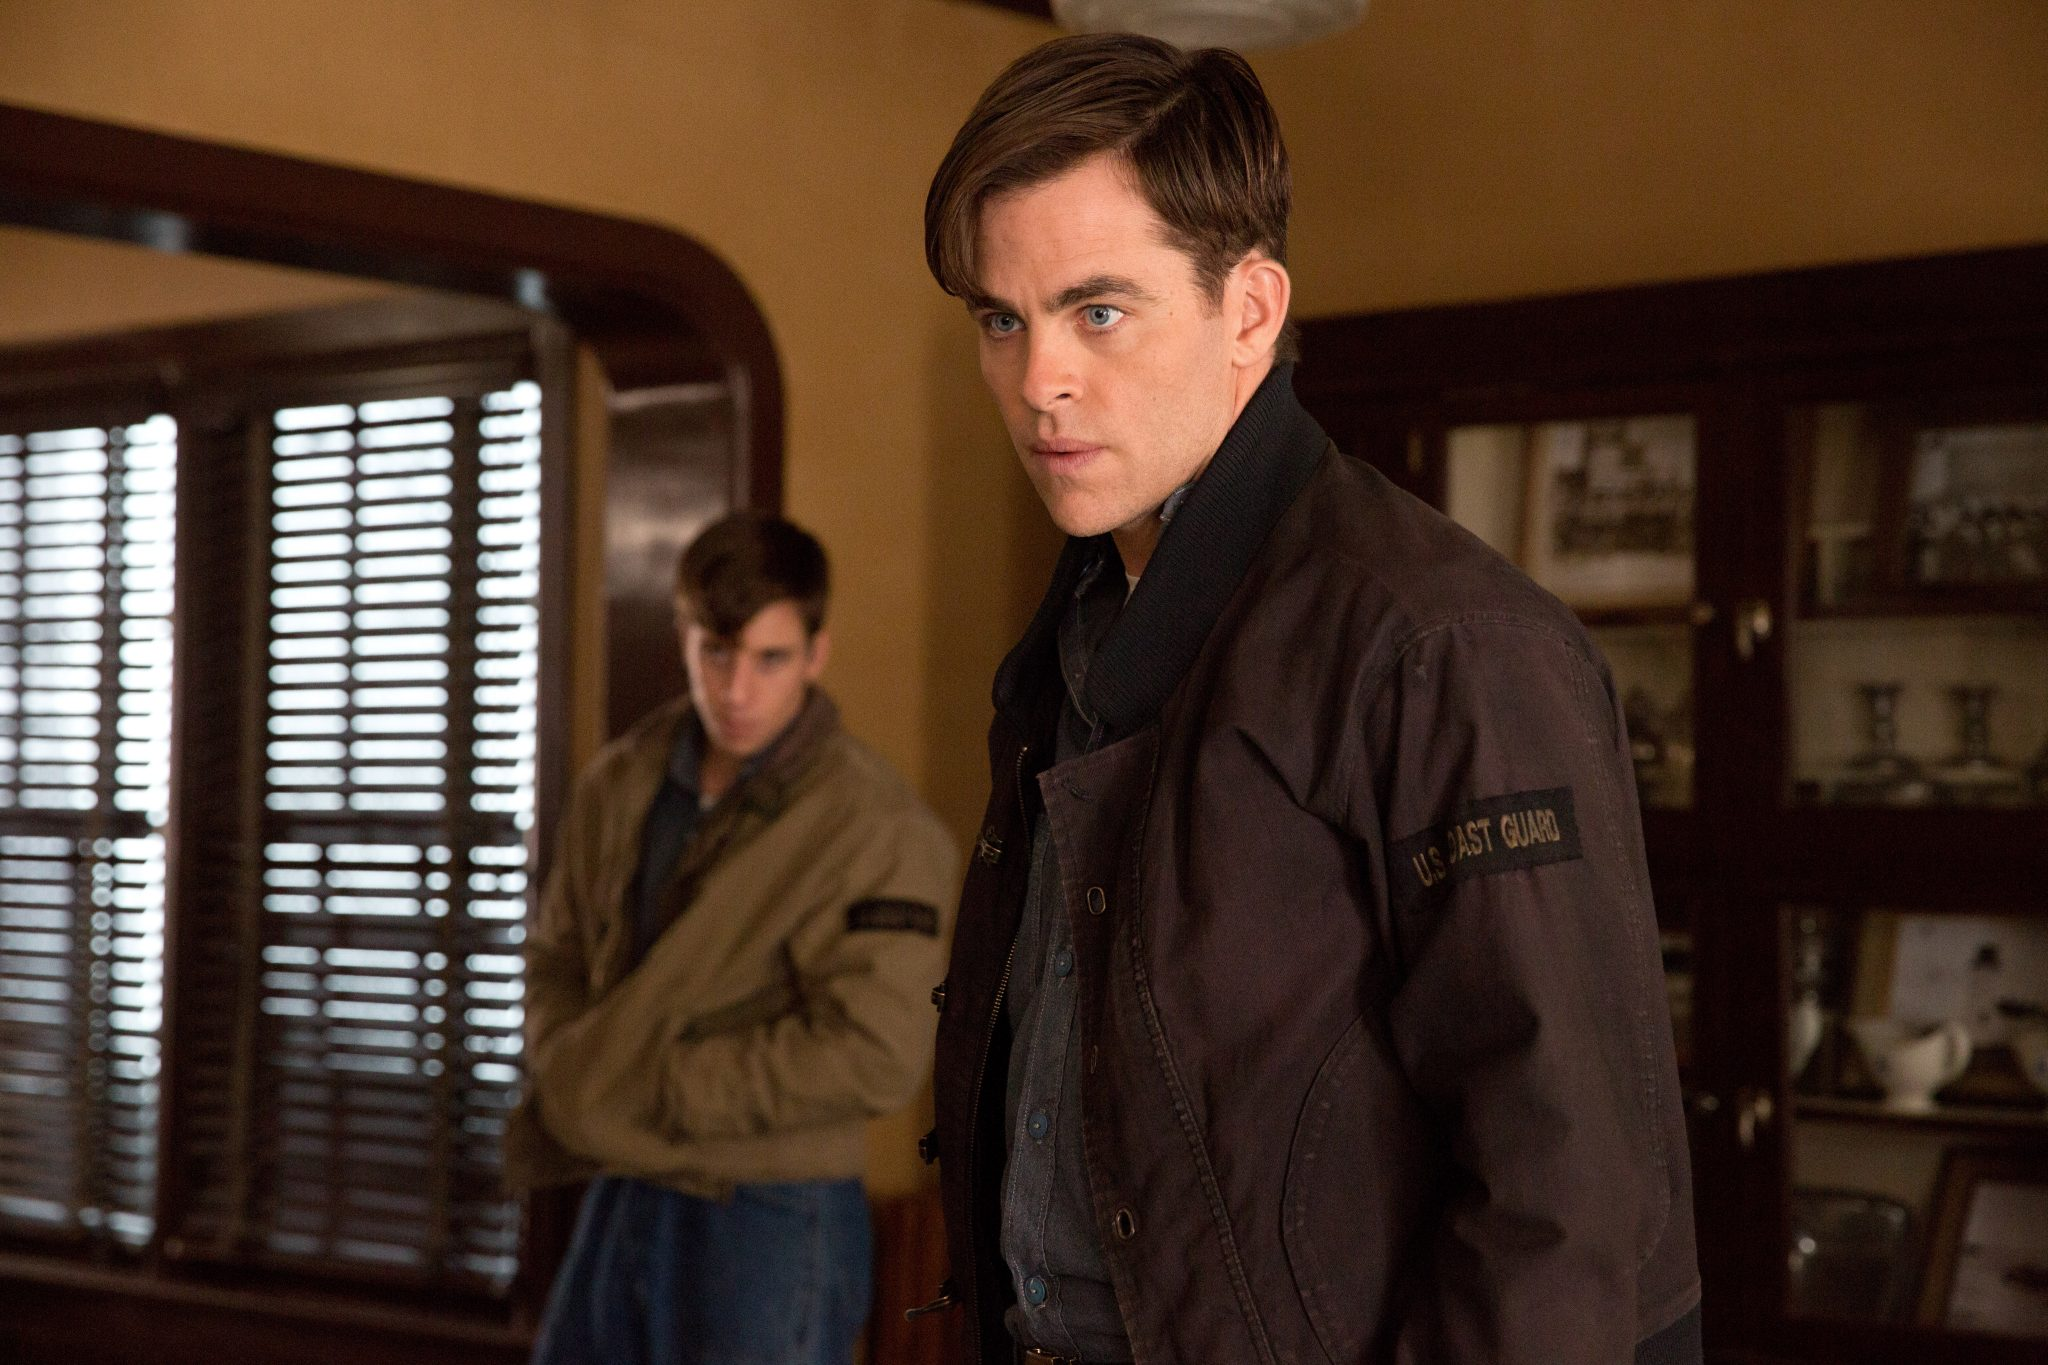 Chris Pine is Bernie Webber and Beau Knapp is Mel Gouthro in Disney's THE FINEST HOURS.